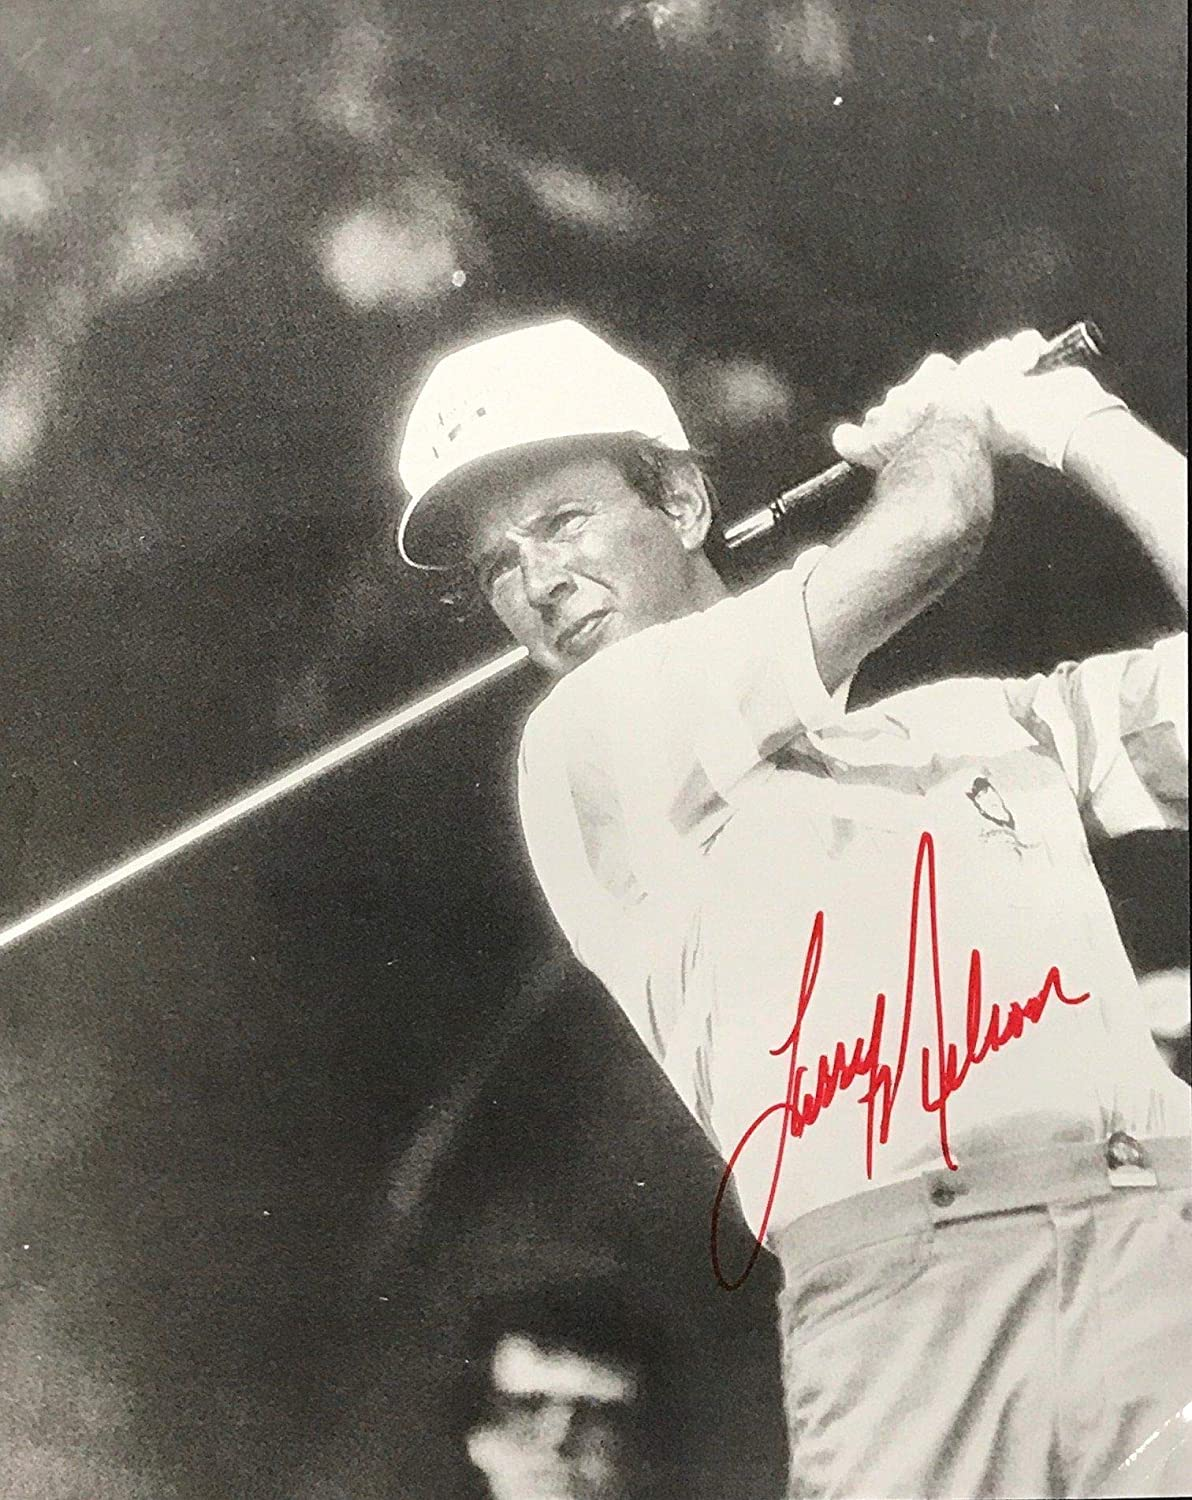 Larry Nelson Signed Golf 8x9 Photo - Autographed Golf Equipment